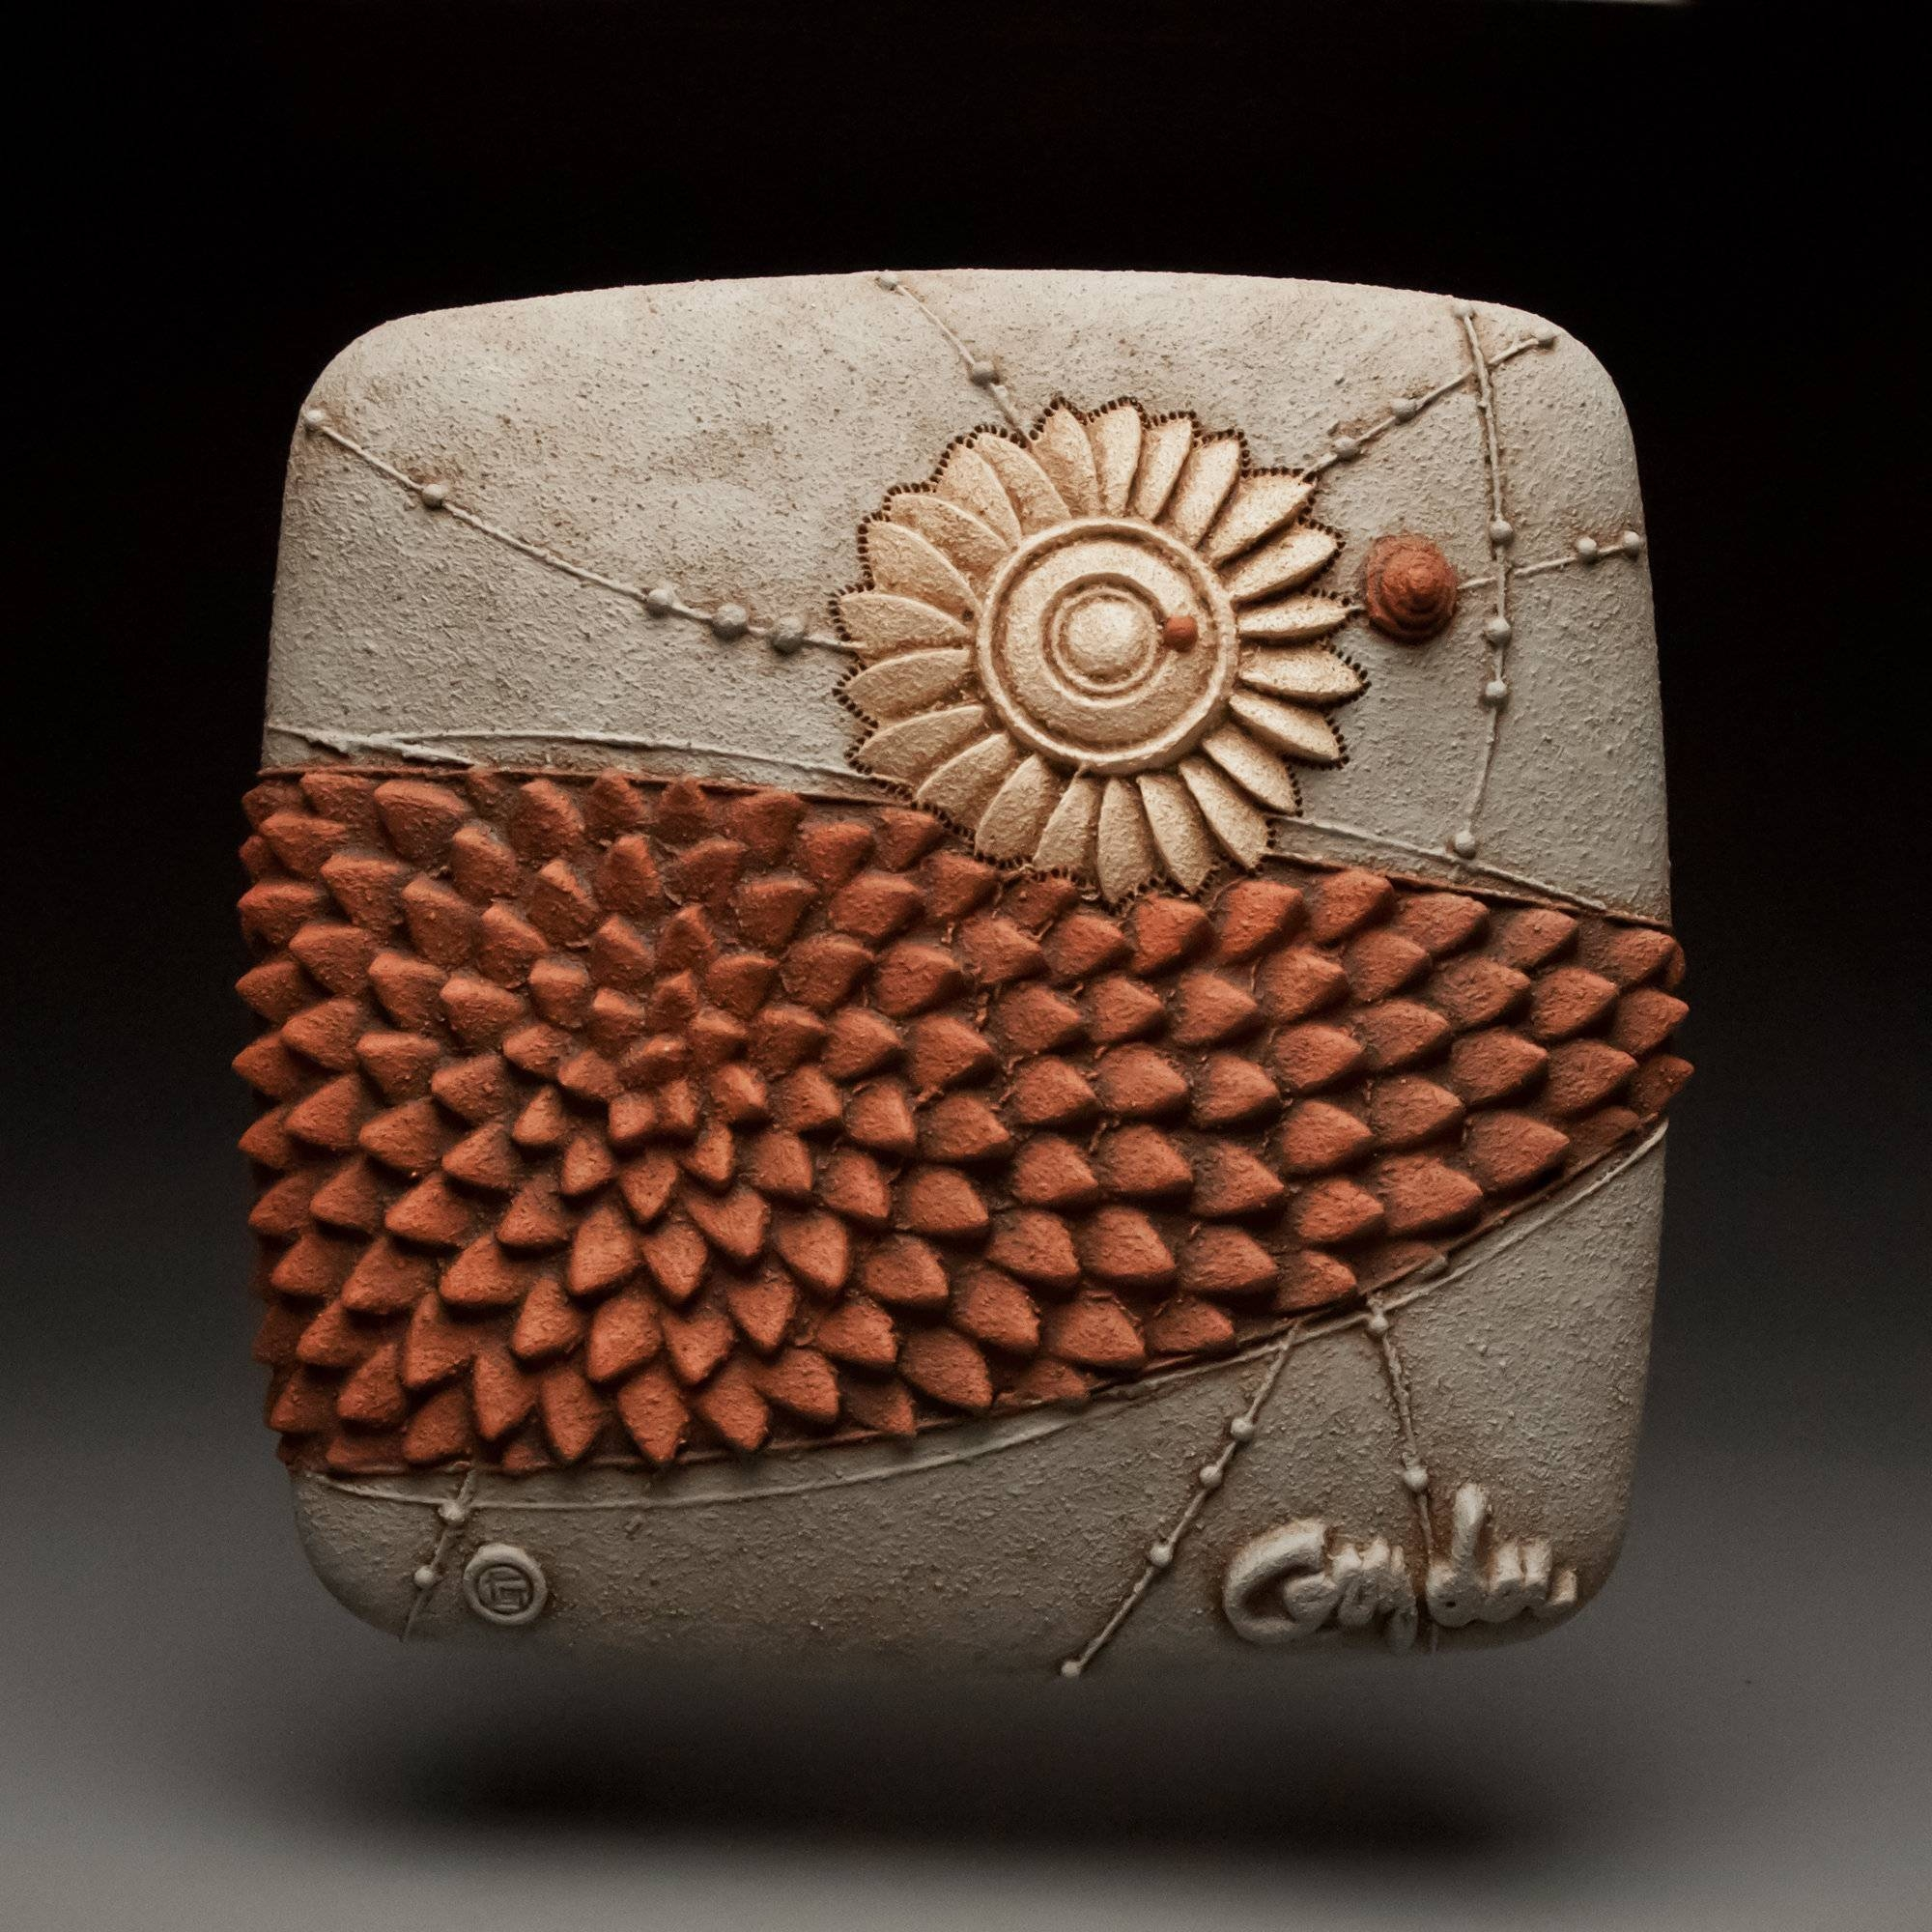 Fresh Movechristopher Gryder (Ceramic Wall Sculpture) | Artful Within Recent Large Ceramic Wall Art (View 13 of 25)